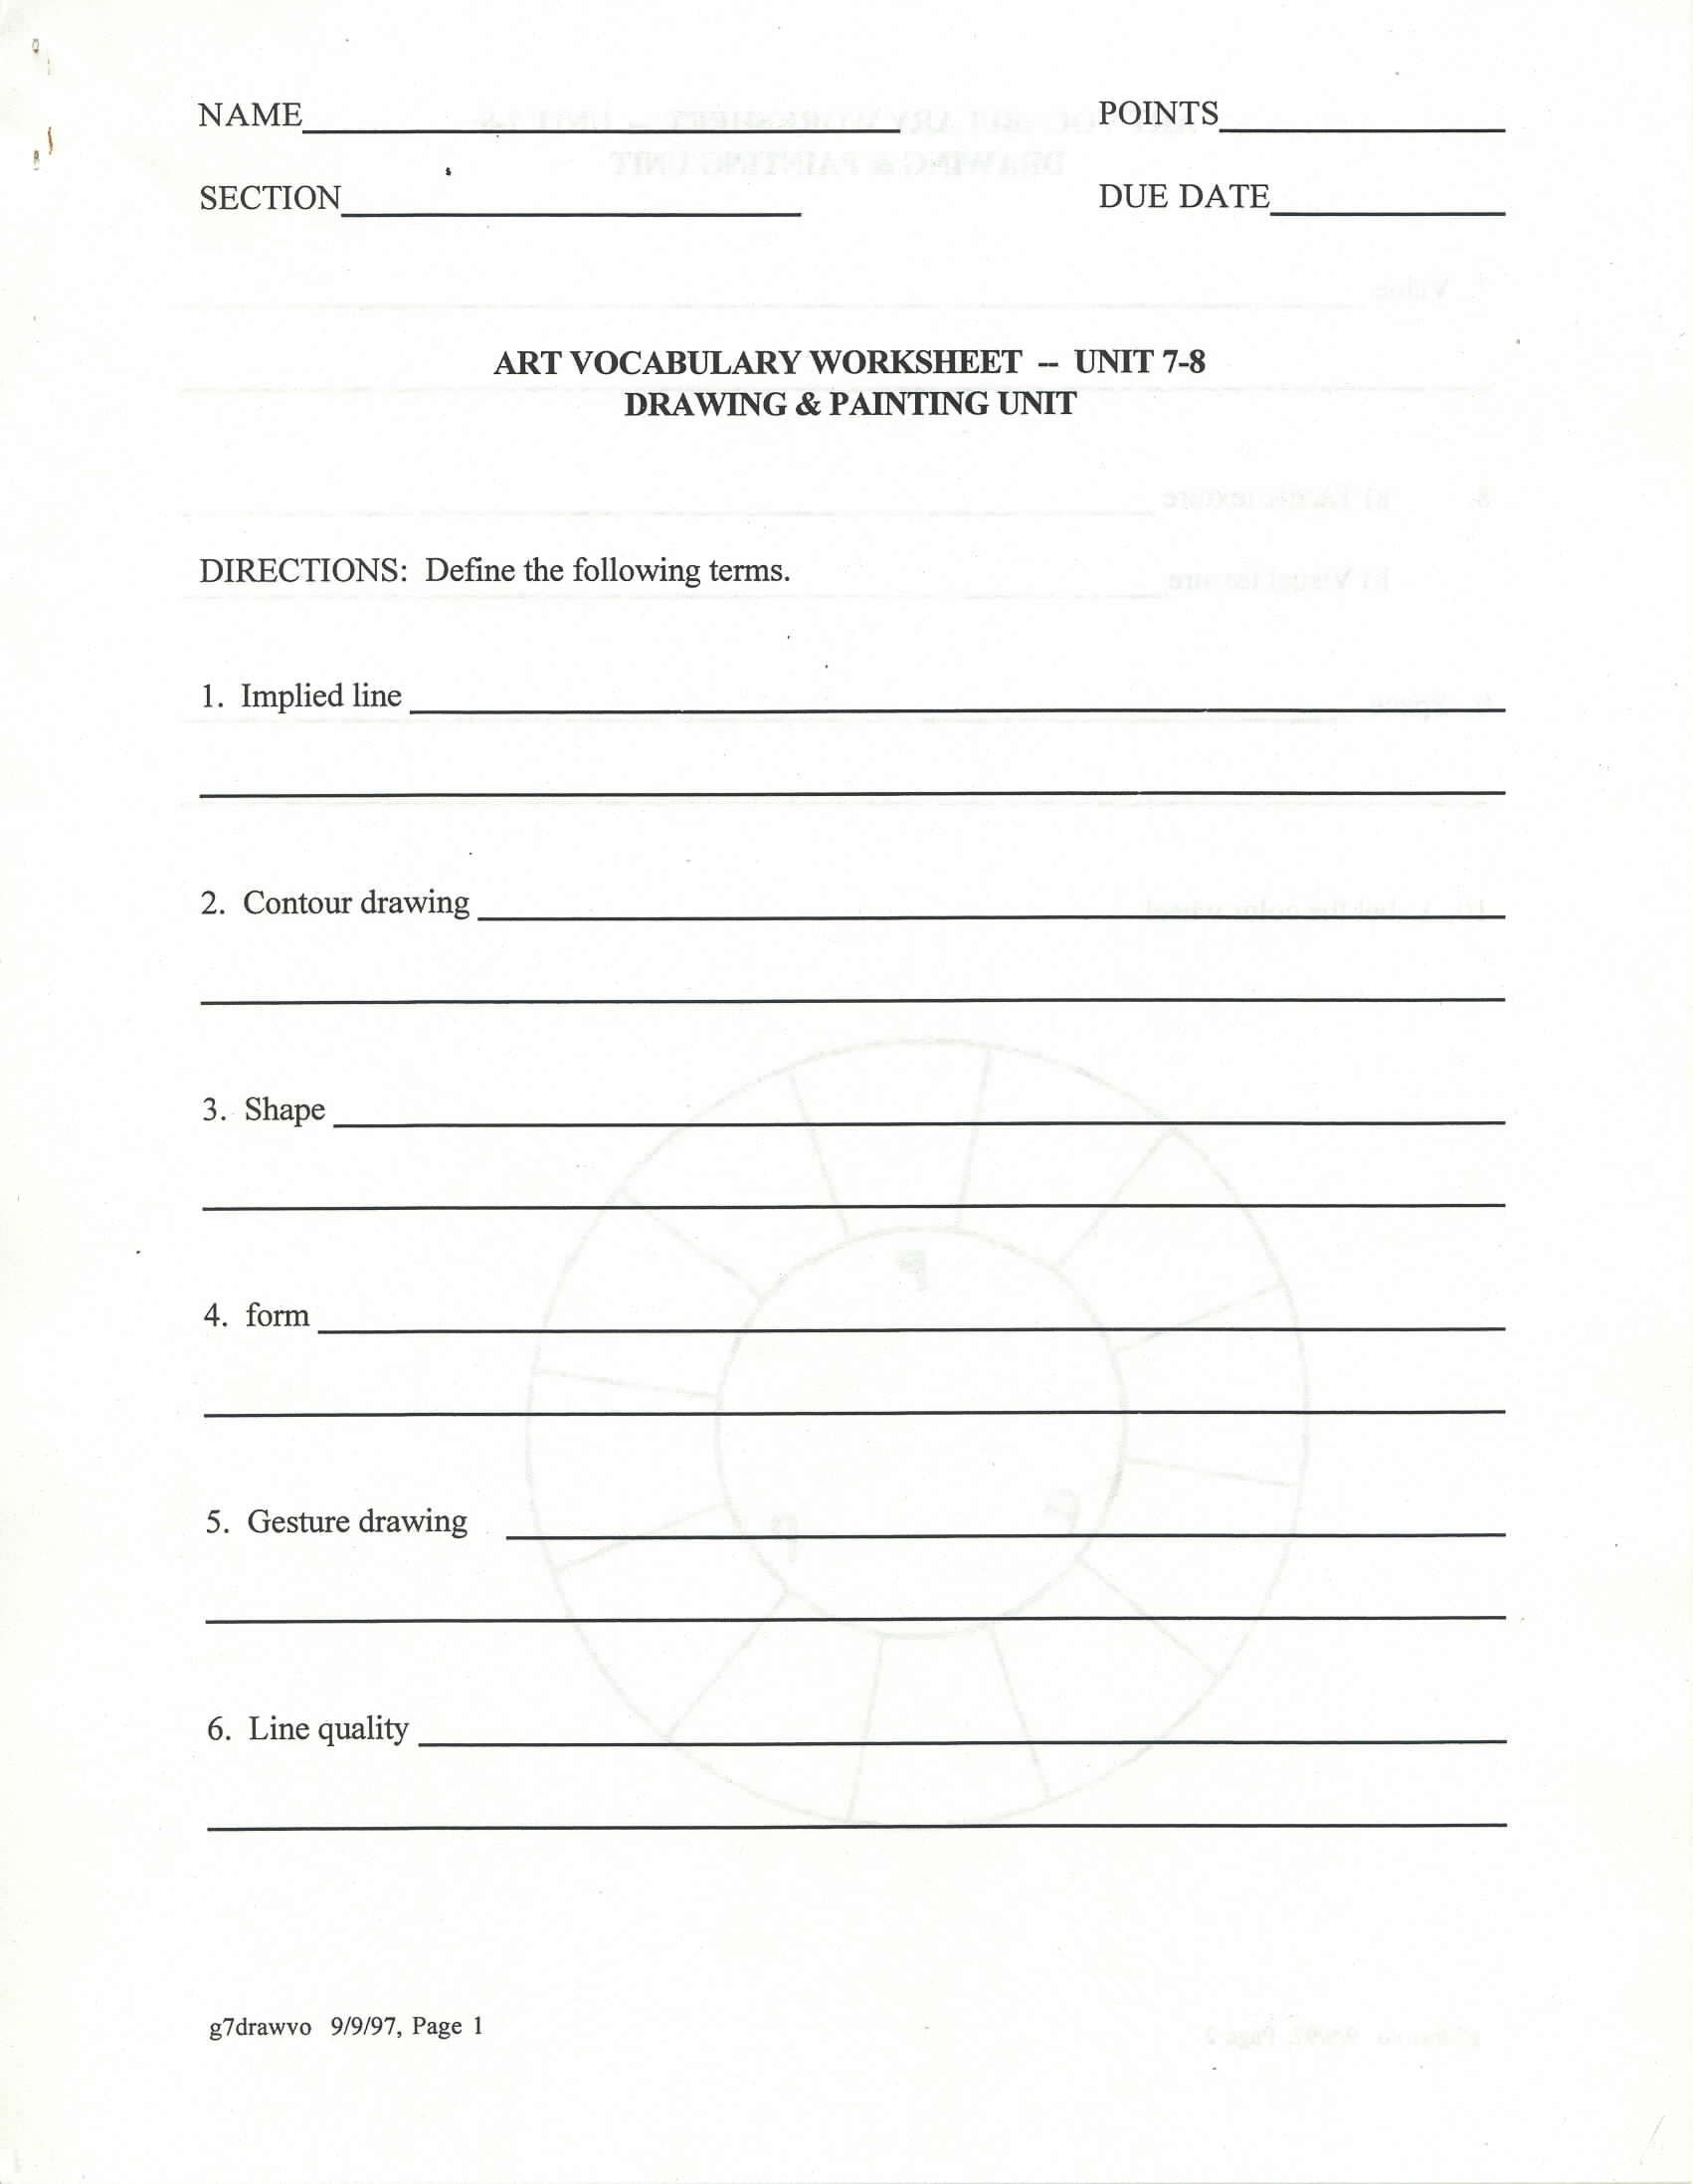 Worksheet Elements And Principles Of Art Worksheet